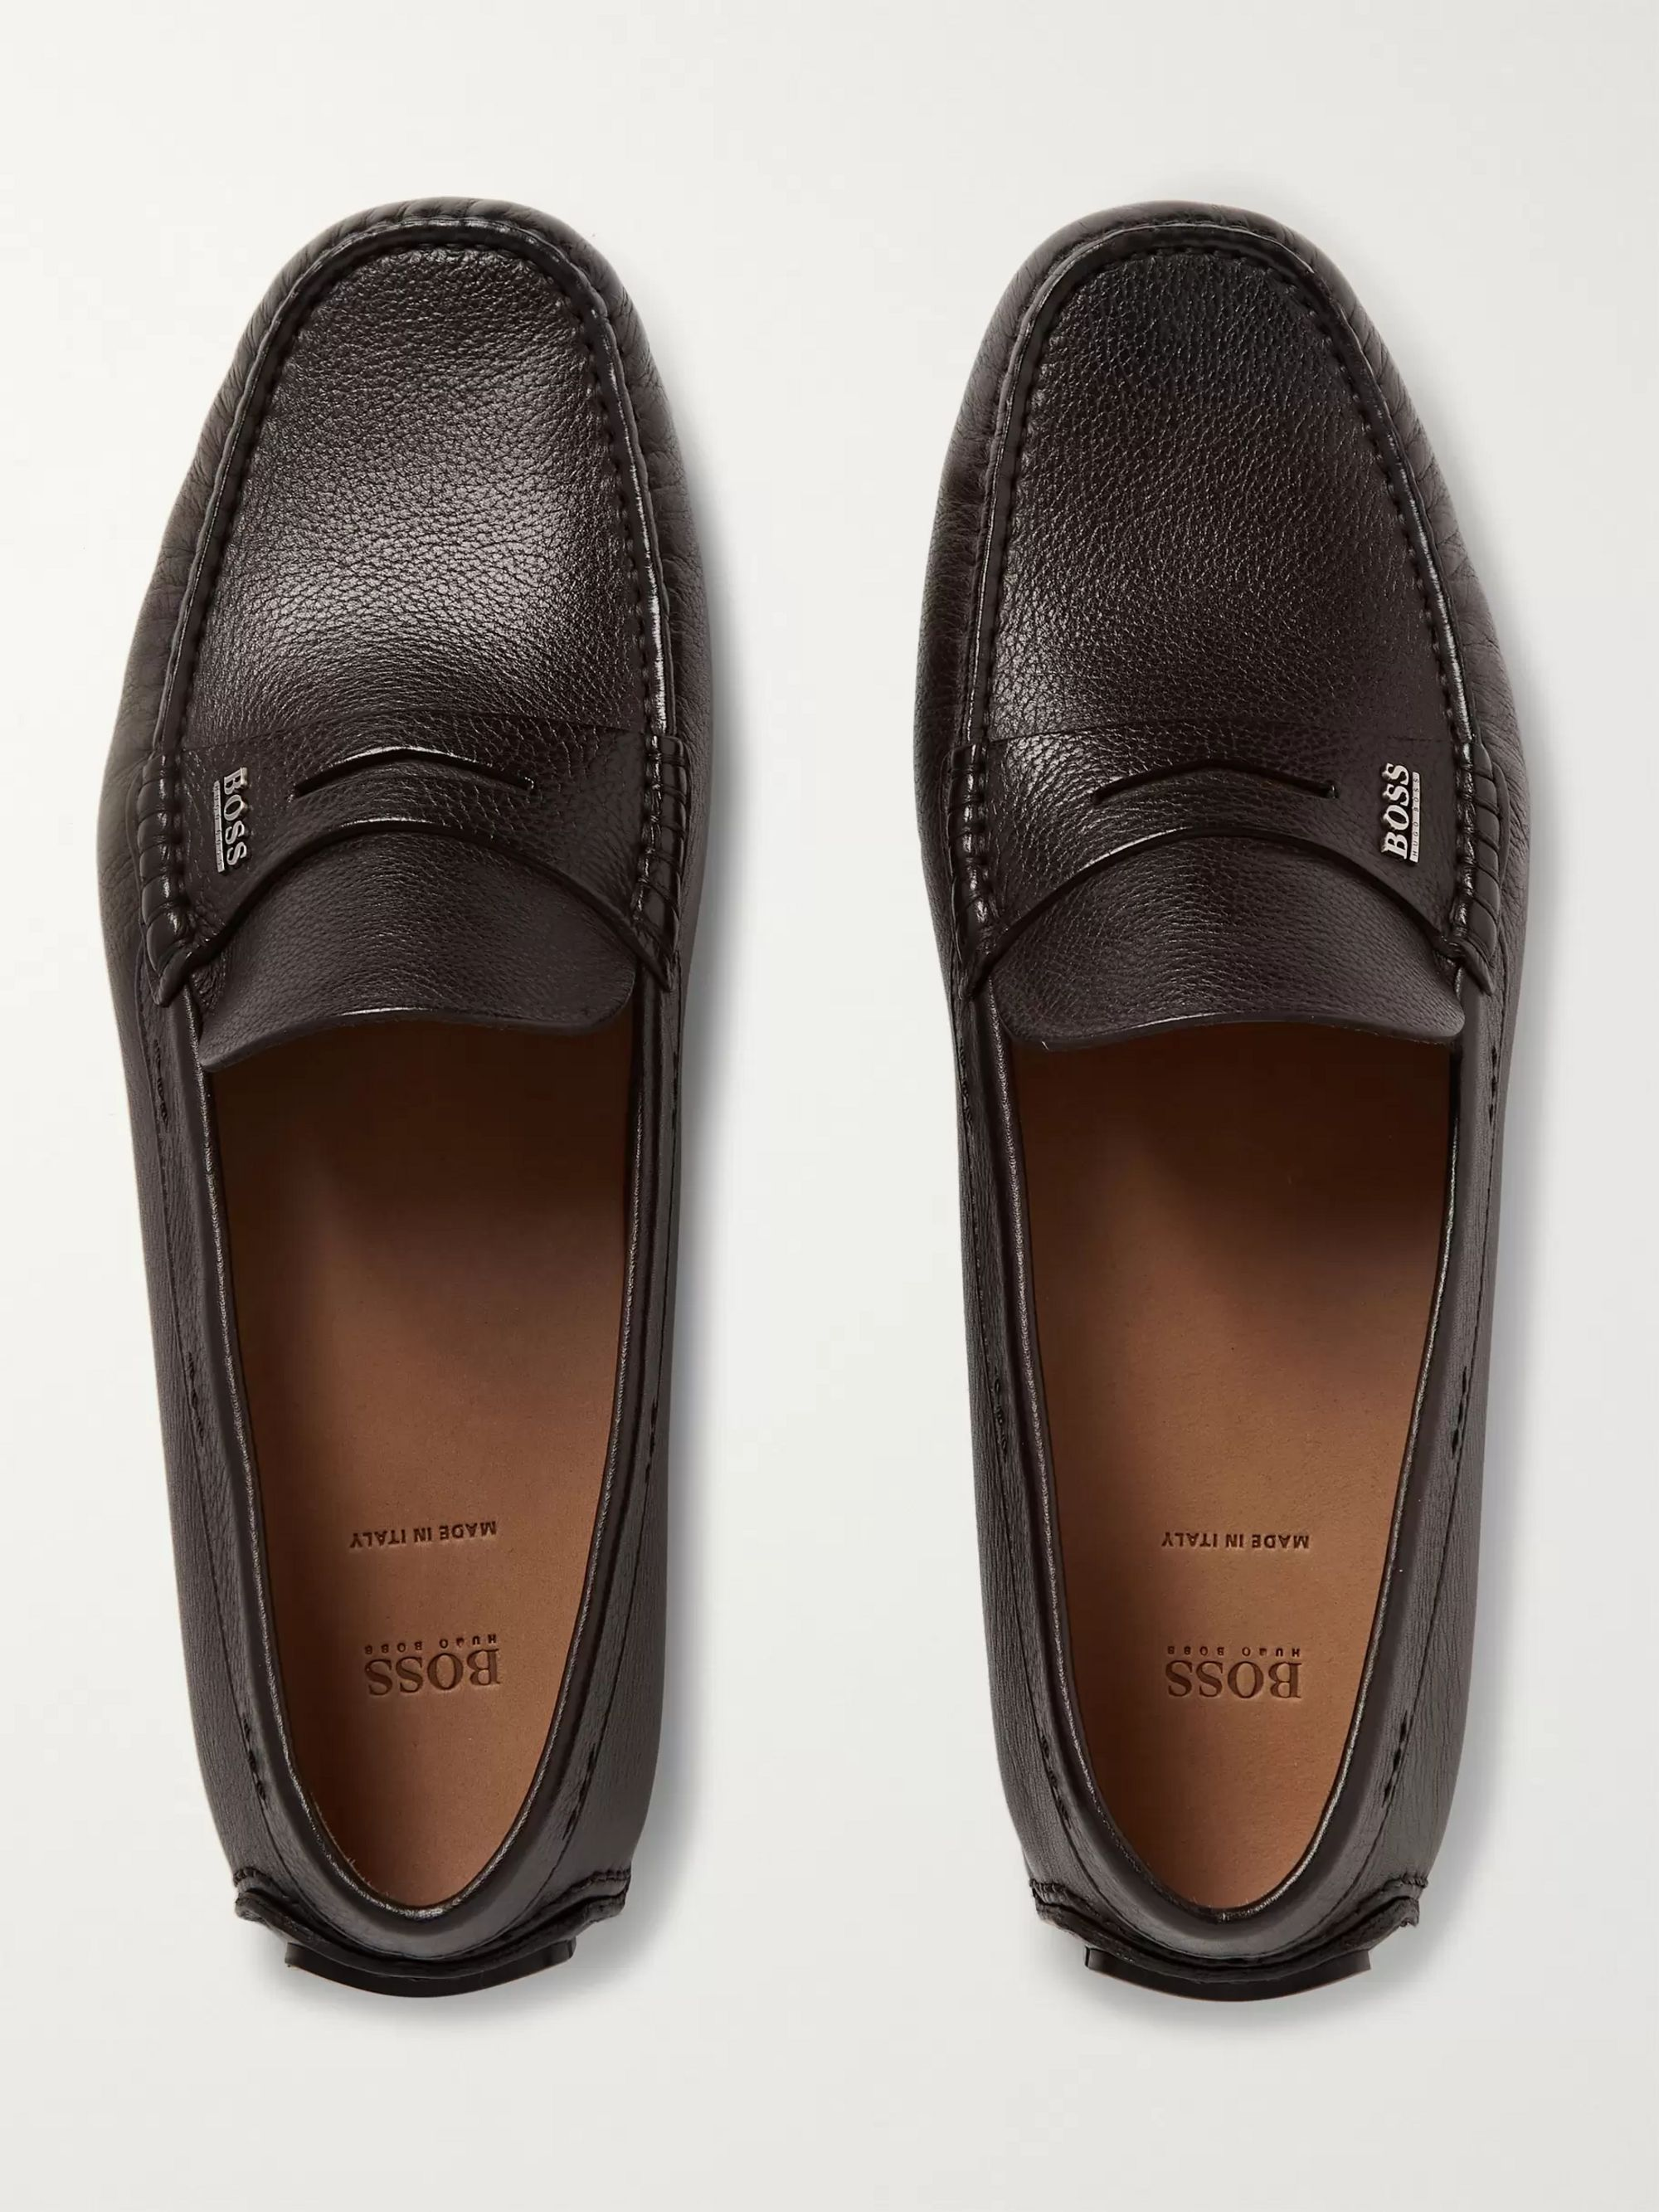 Hugo Boss Leather Driving Shoes